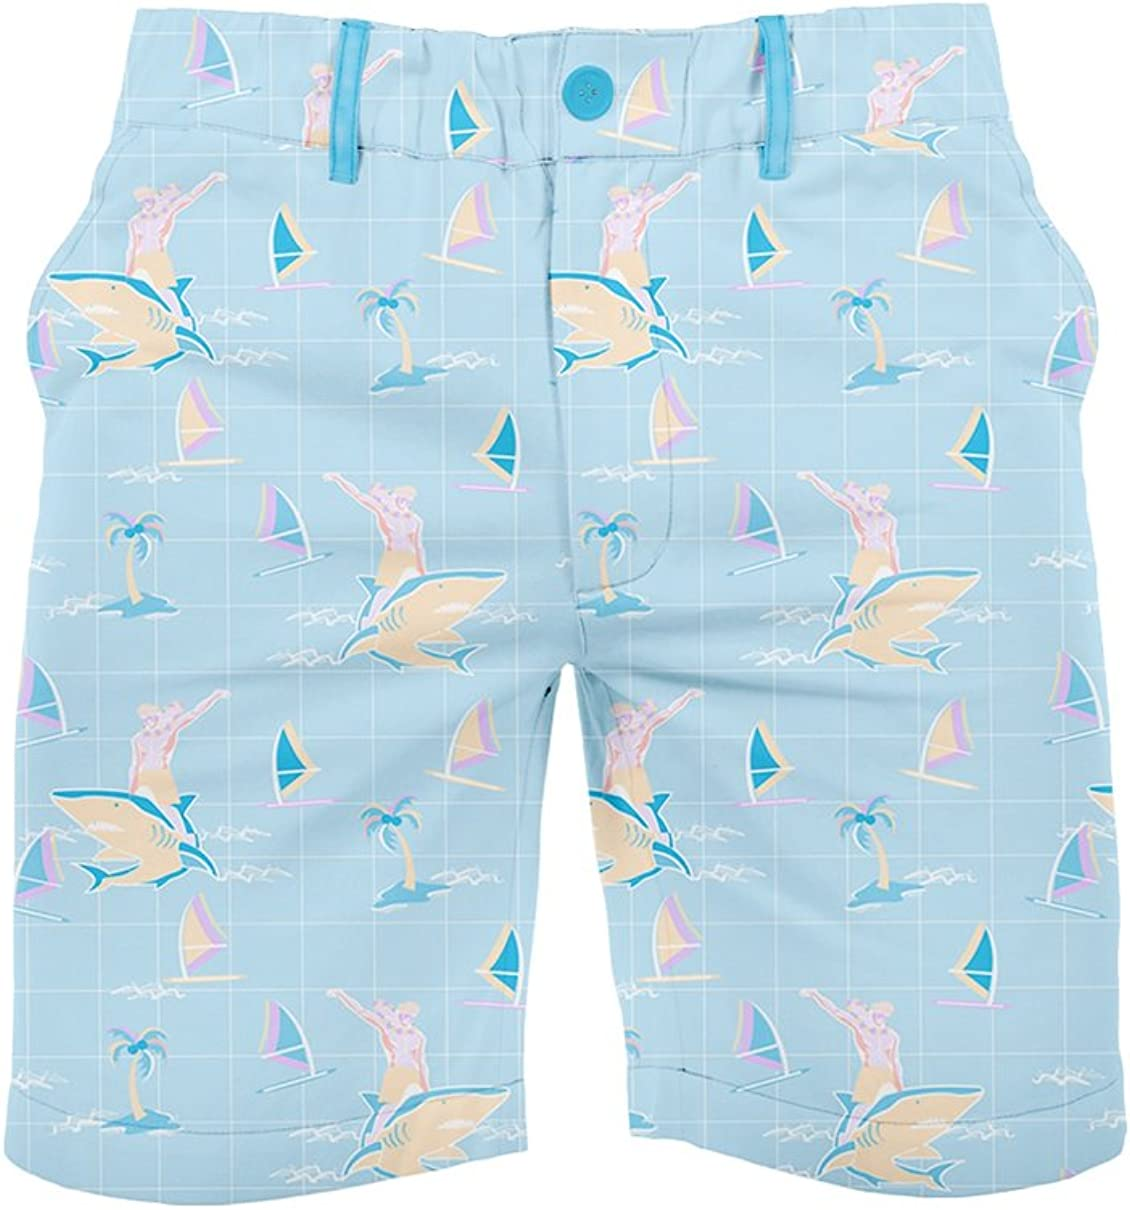 Tipsy Elves Men's Casual Summer Shorts w/Elastic Waist - Wild Patterned Golf Shorts